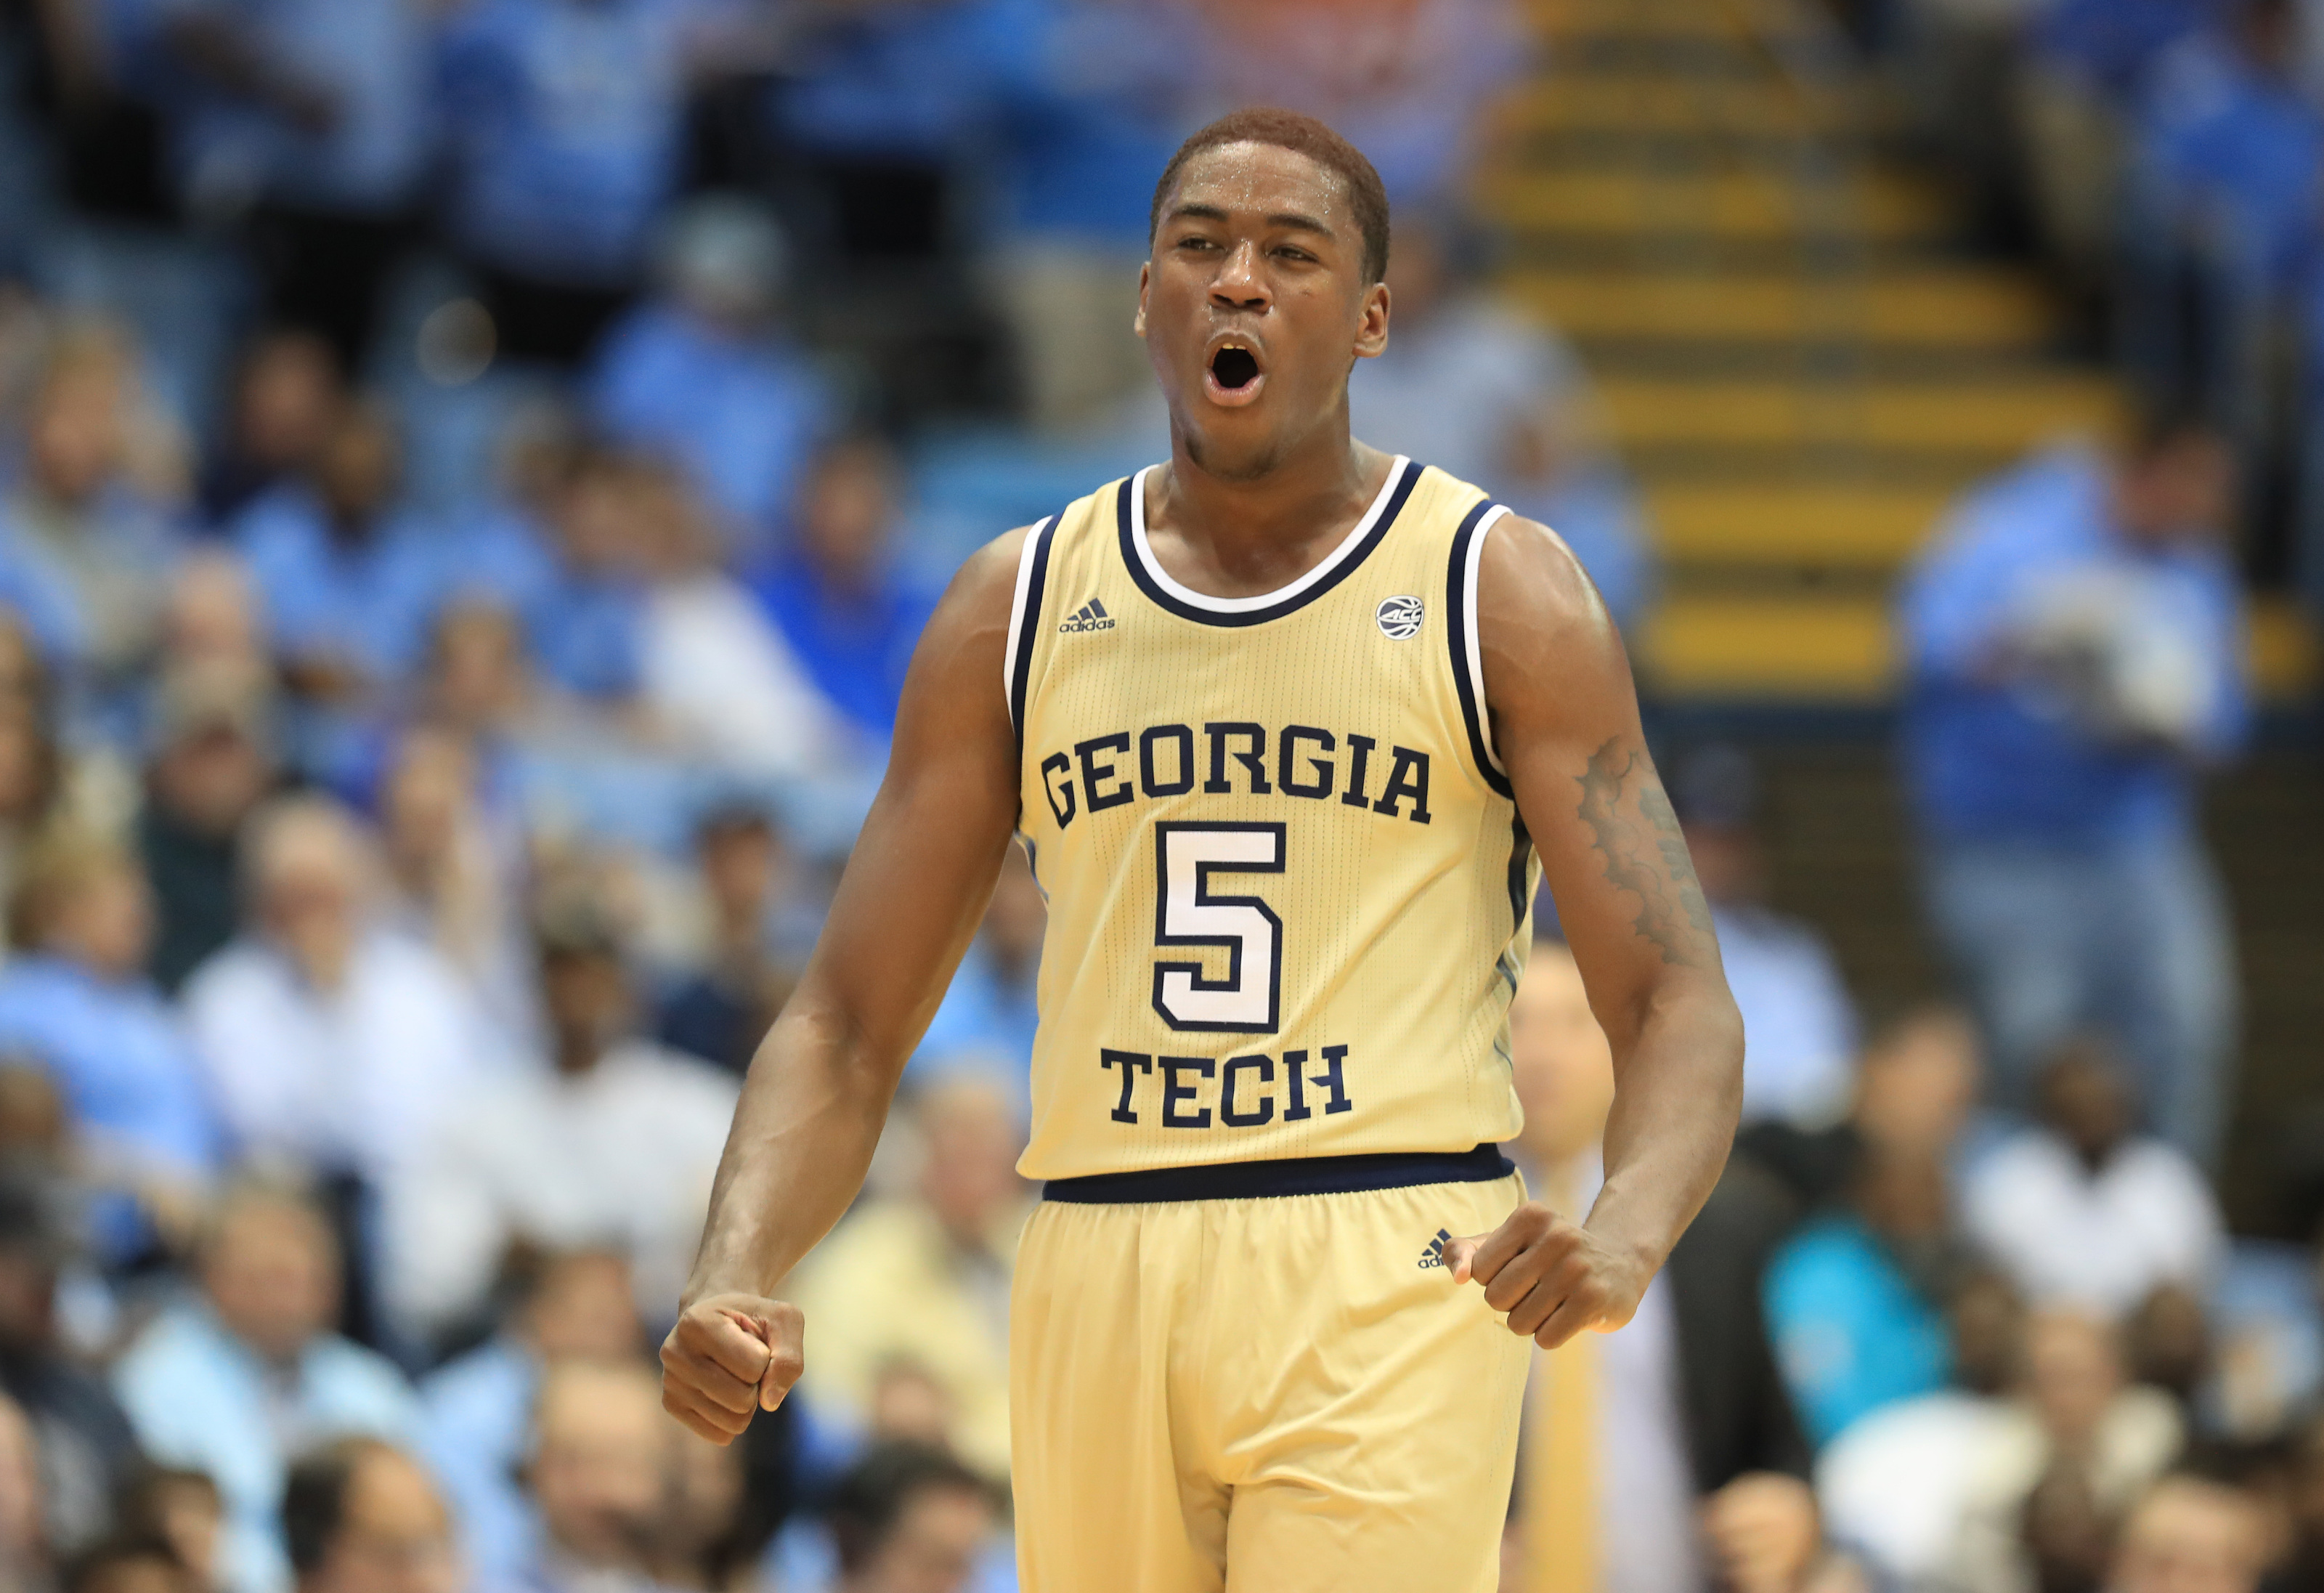 Georgia Tech Basketball: Jackets Player of the Game Against Syracuse